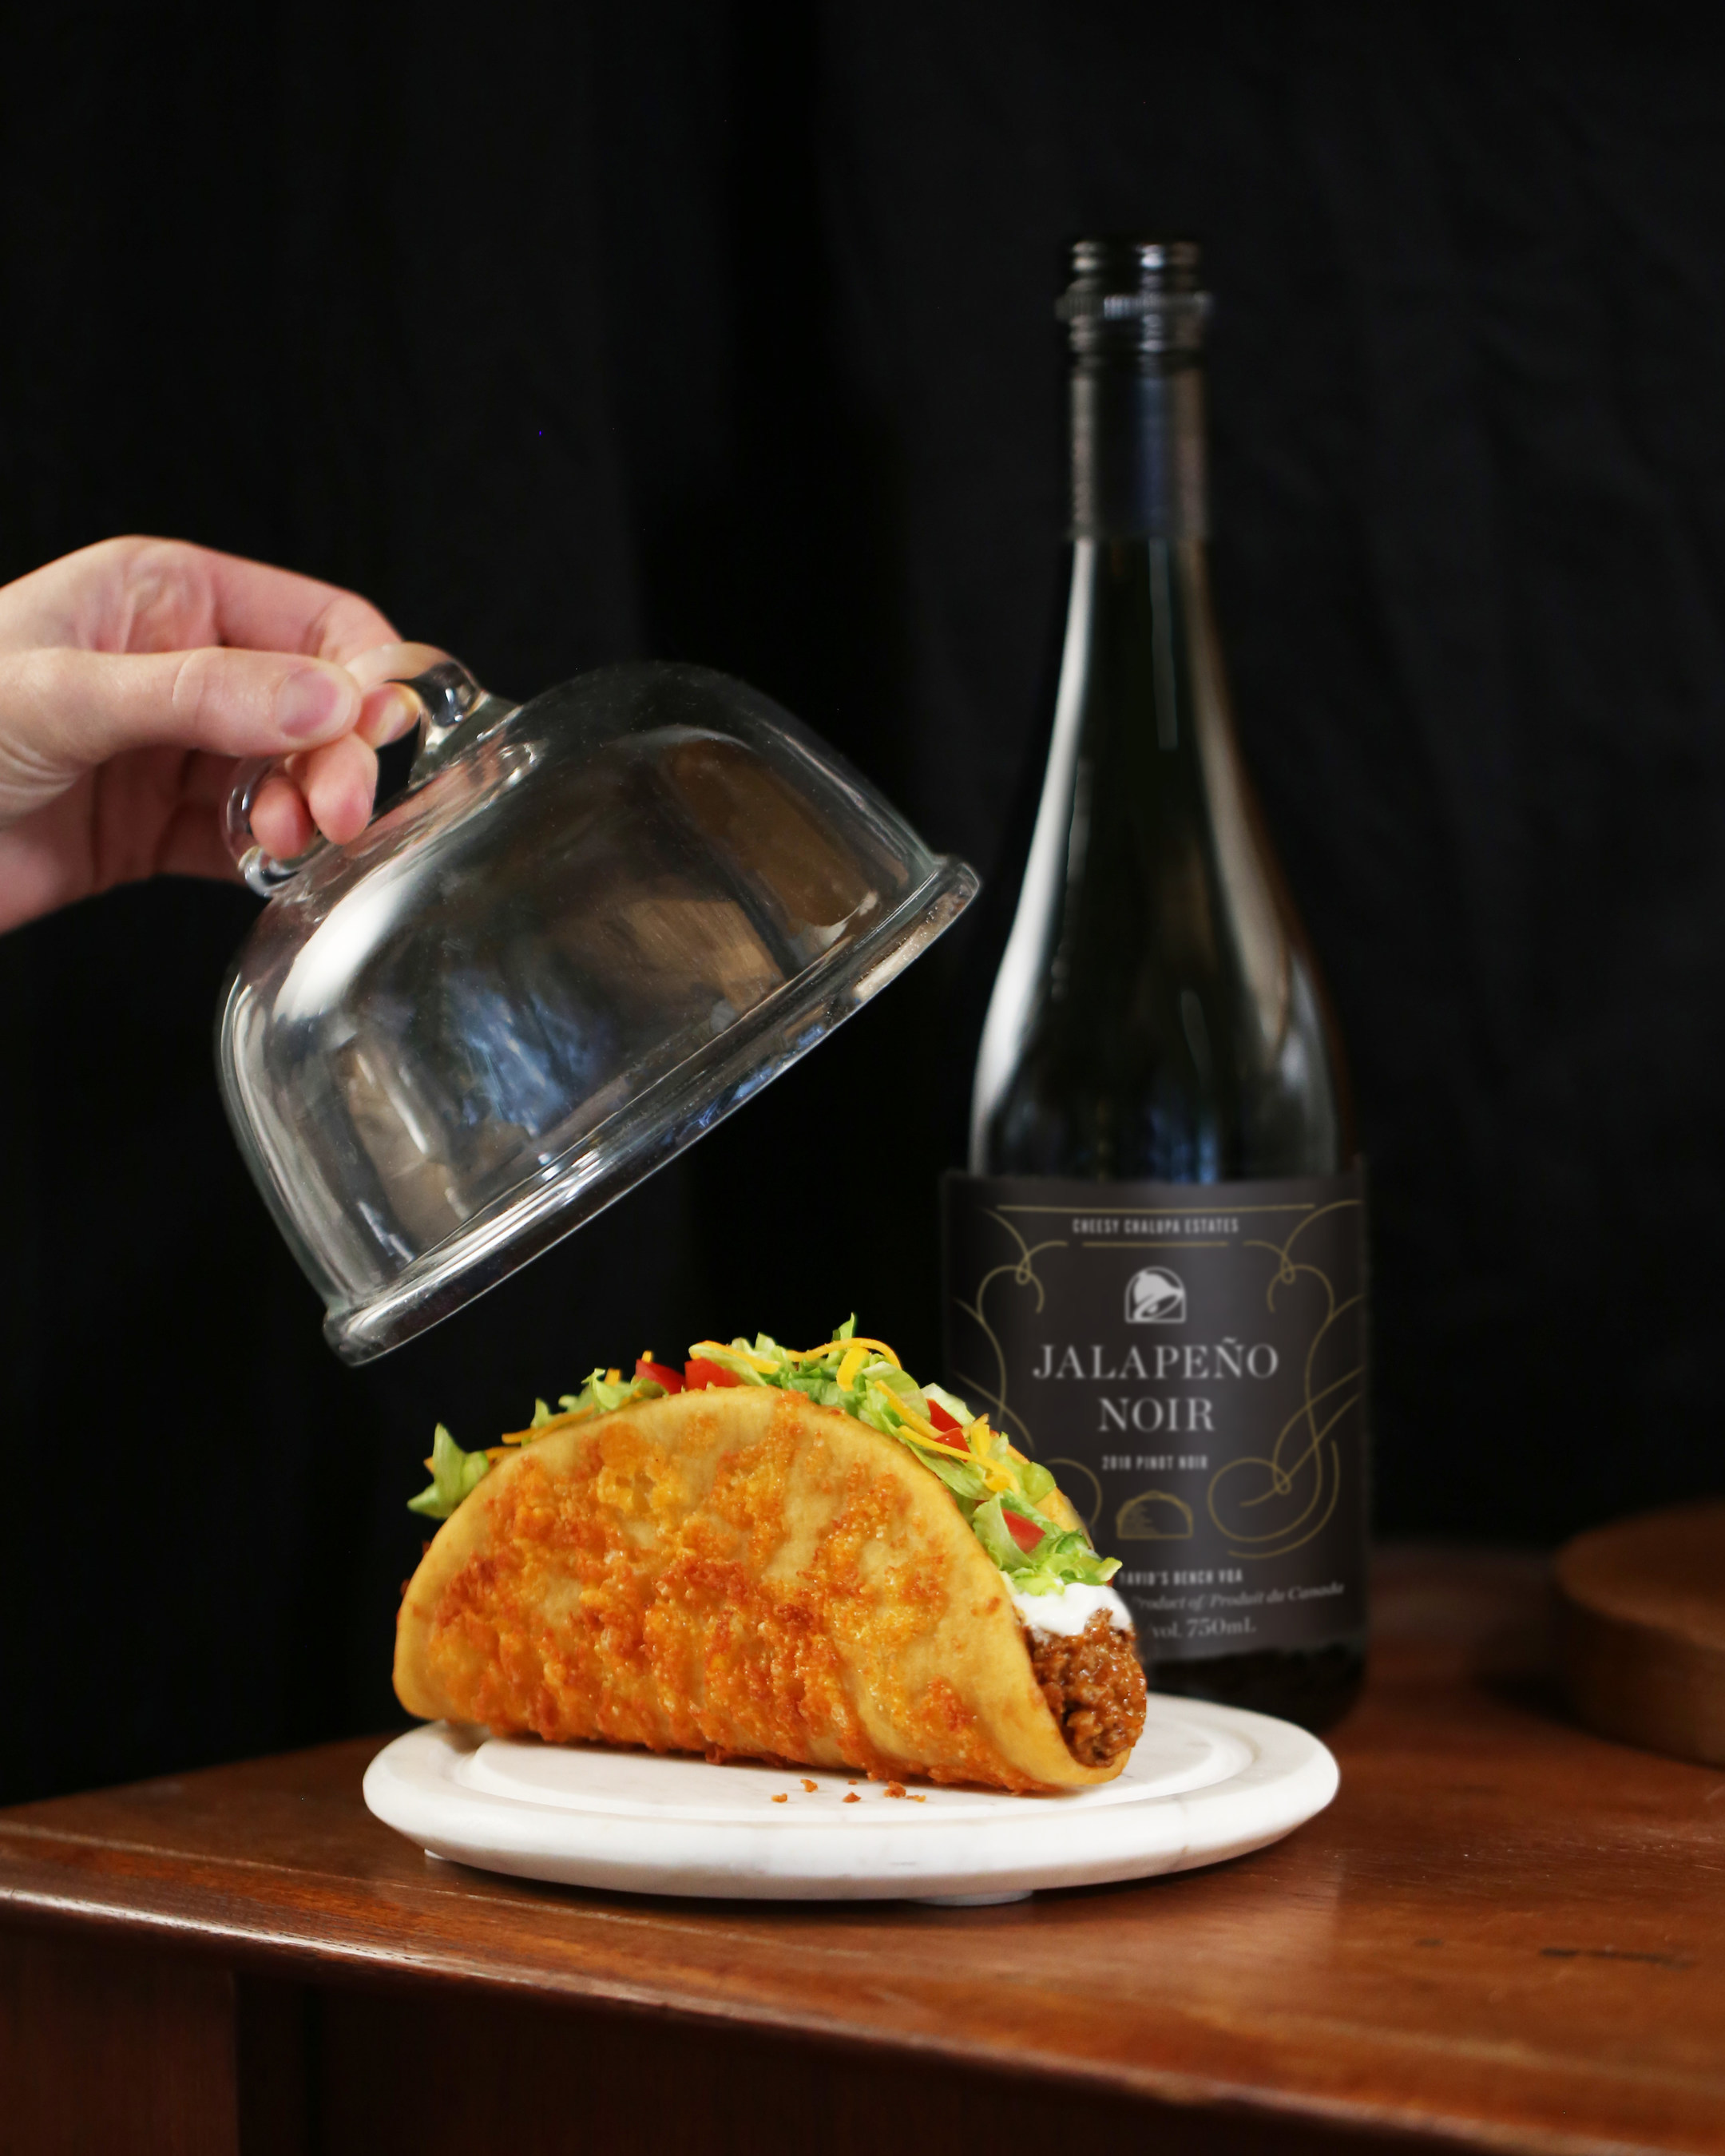 Taco Bell debuting 'Jalapeno Noir' wine in Canada, suggests pairing it... image